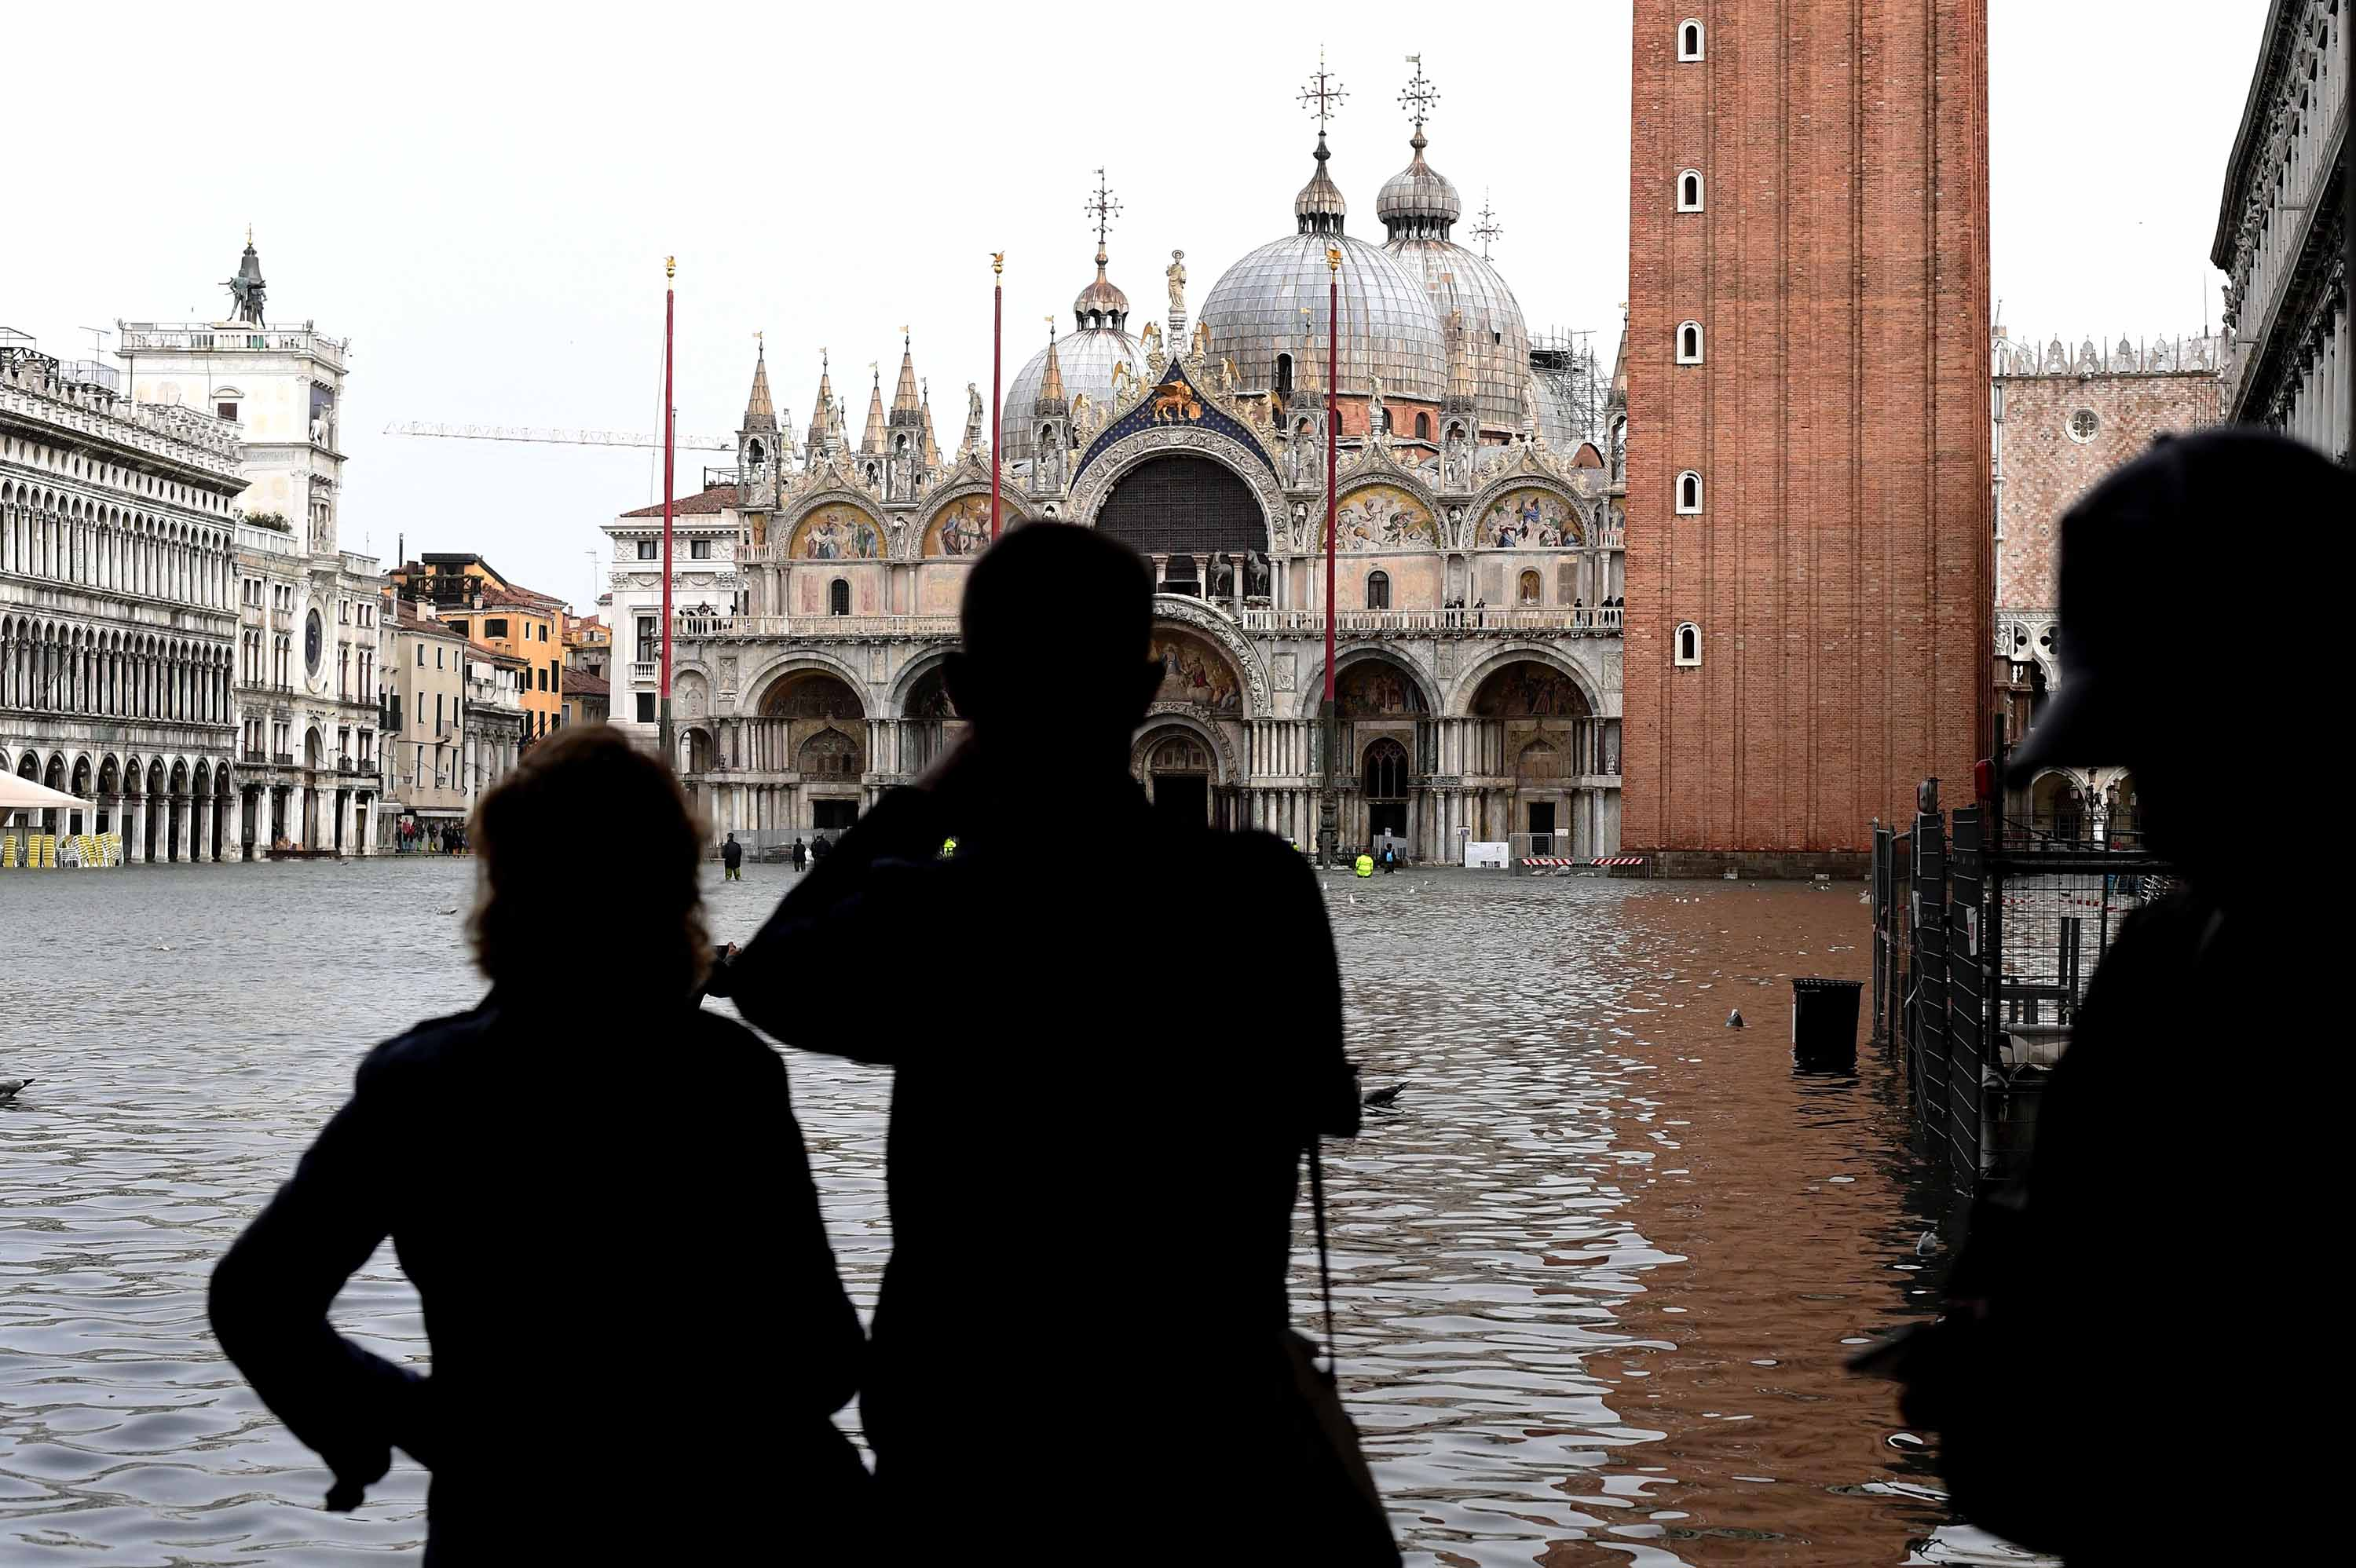 italy storms leave several dead, venice flooded - cnn video